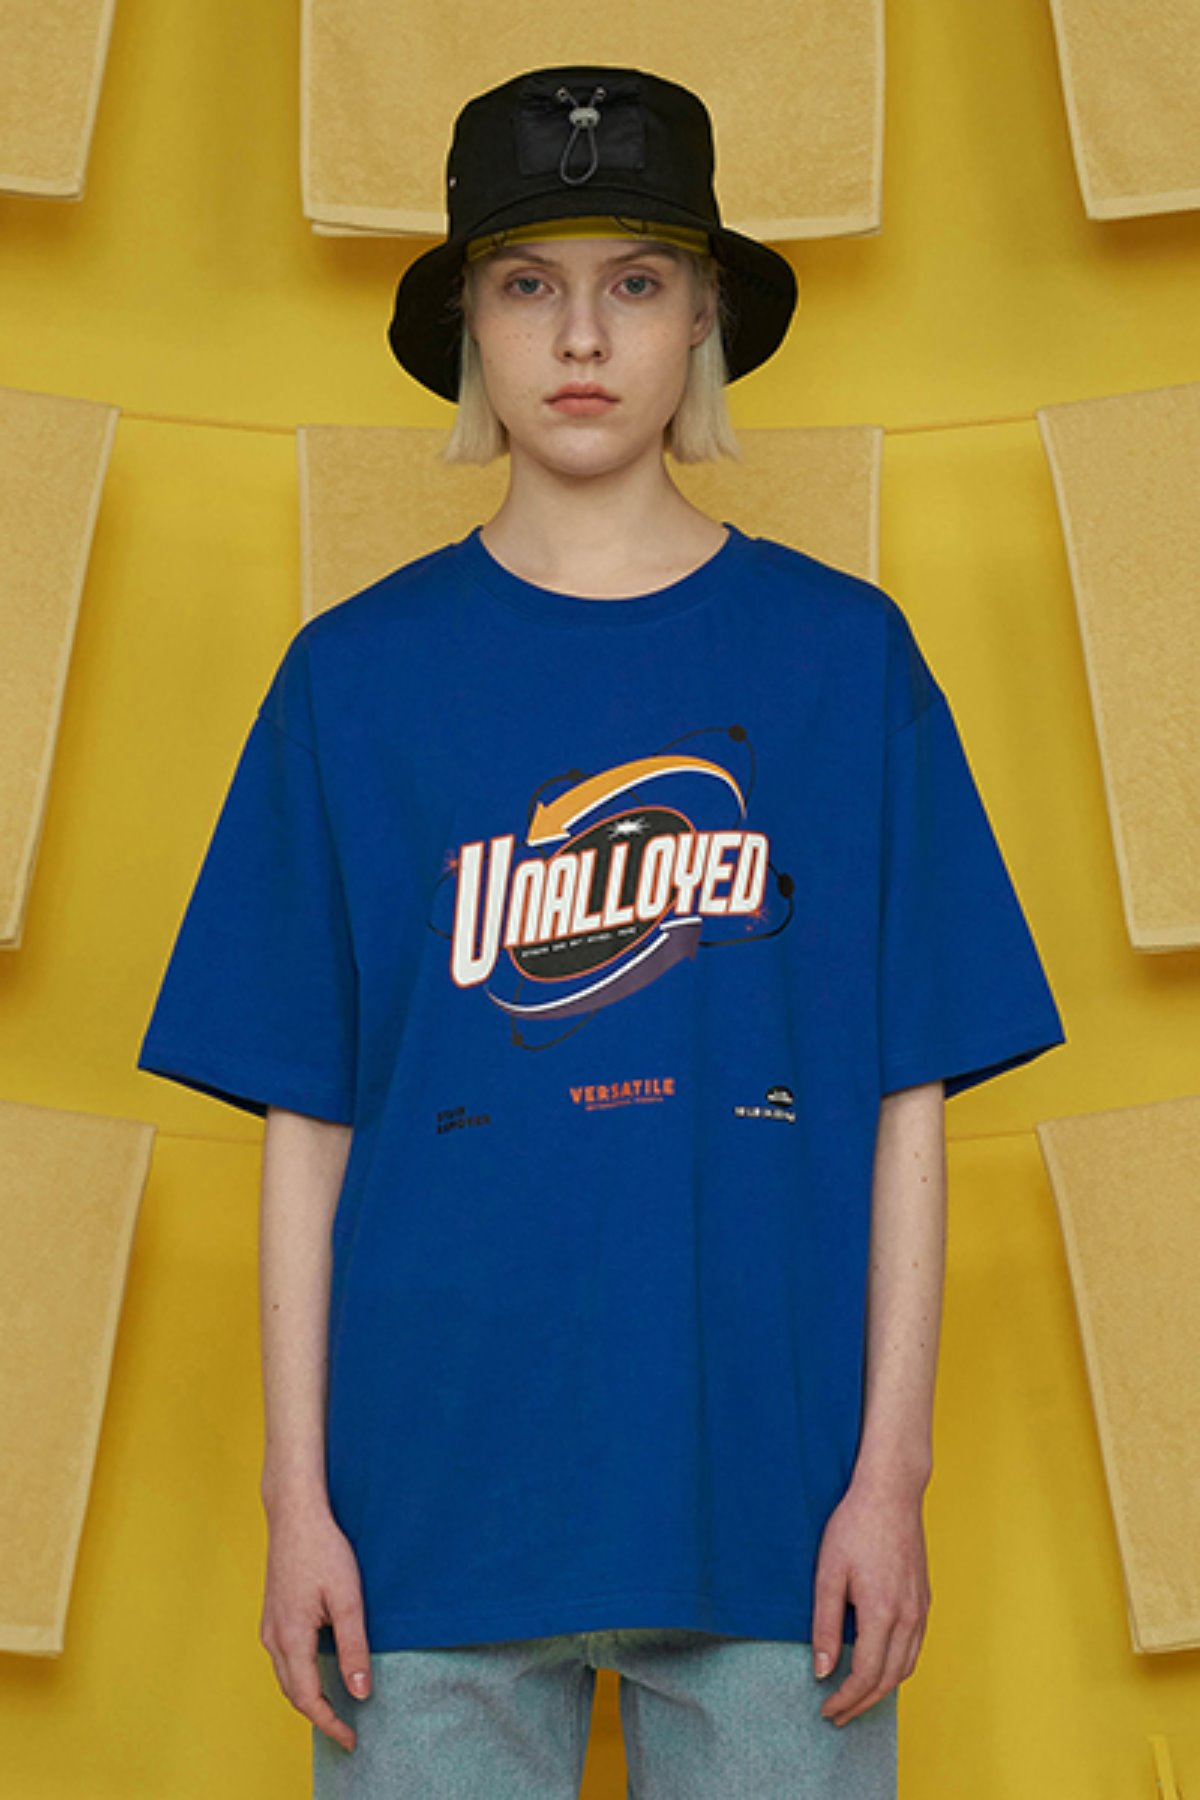 LAUNDRY T SHIRT / BLUE